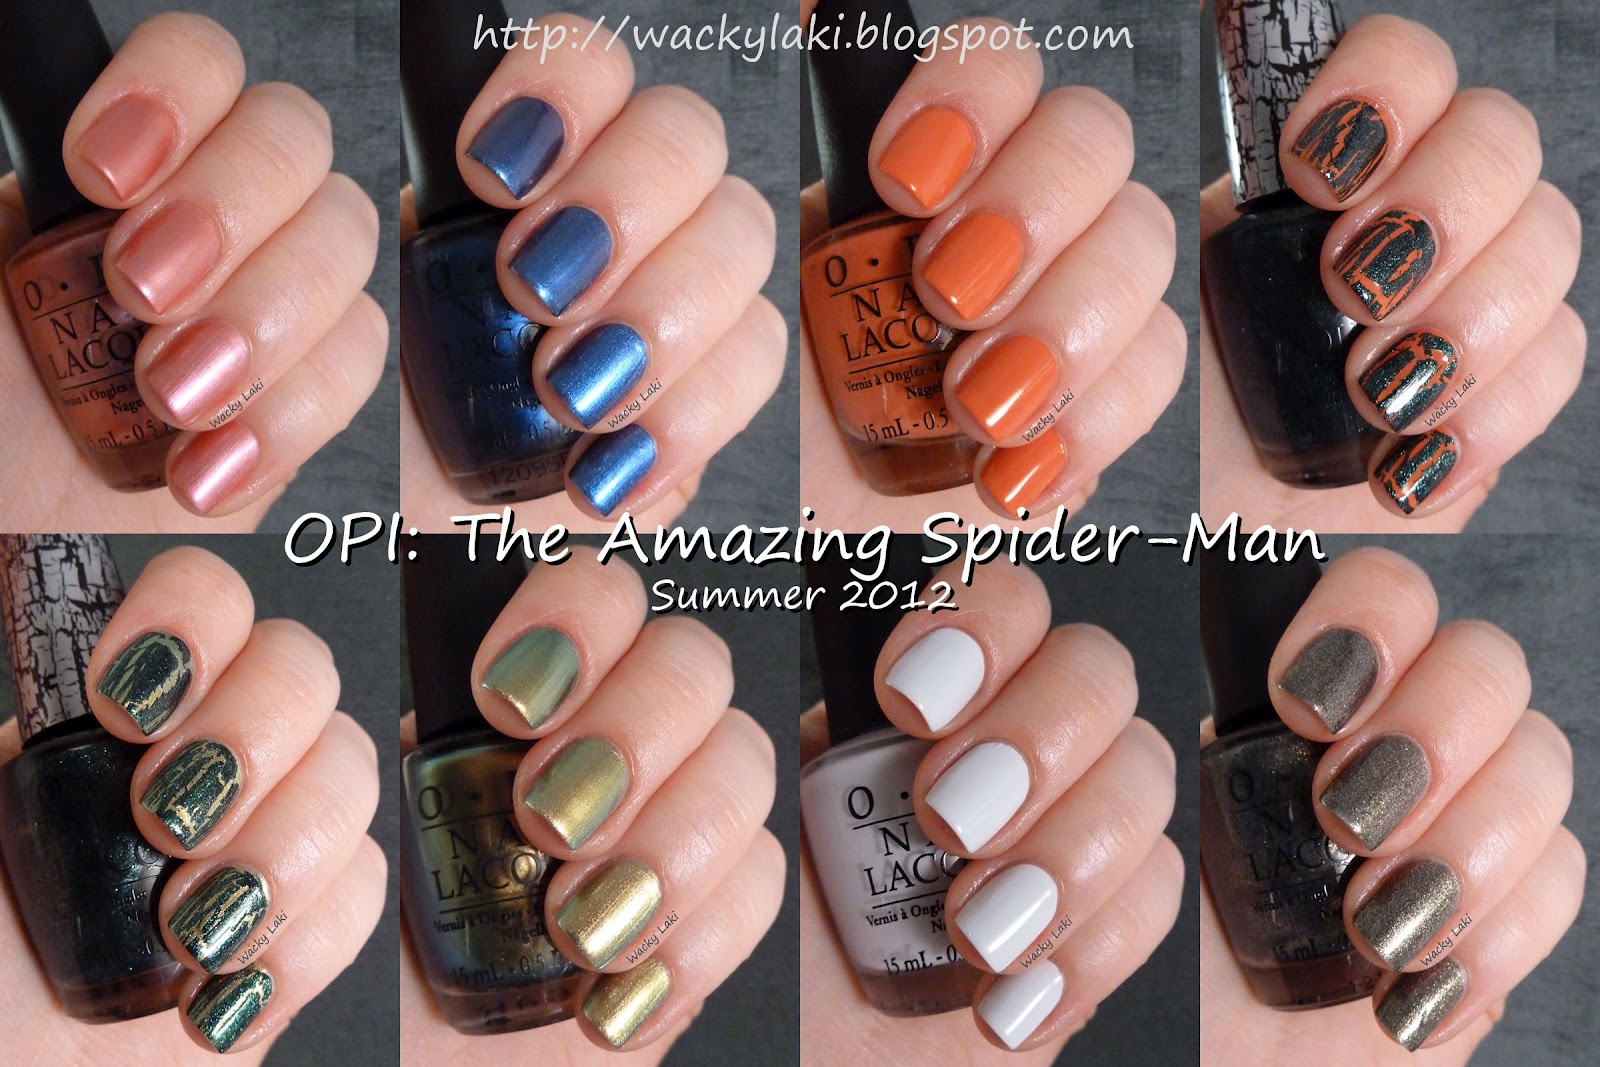 Wacky Laki: OPI: The Amazing Spider-Man Collection for Summer 2012